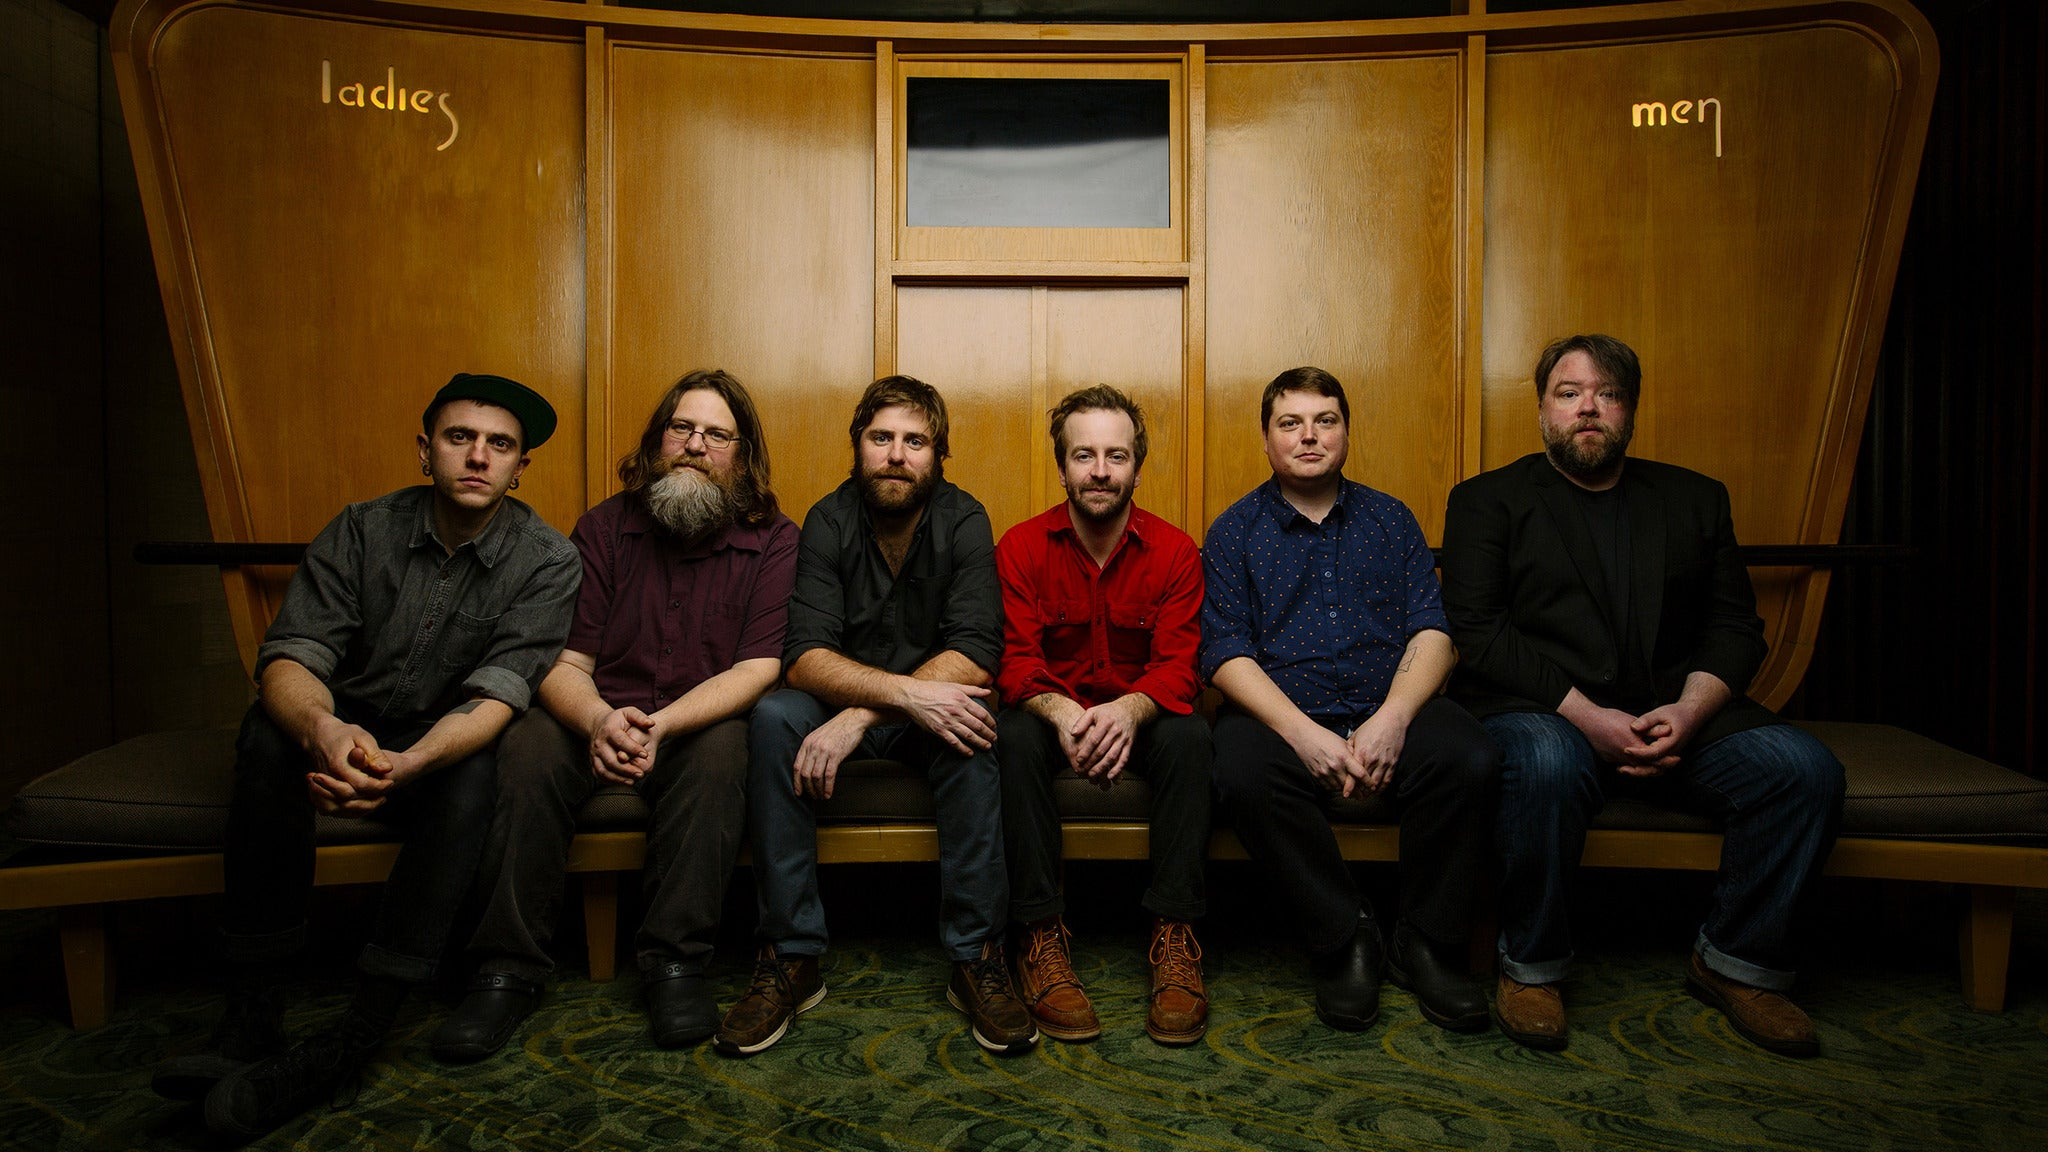 Mt. Joy & Trampled By Turtles Fall Tour 2021 pre-sale password for event tickets in Bend, OR (Les Schwab Amphitheater)